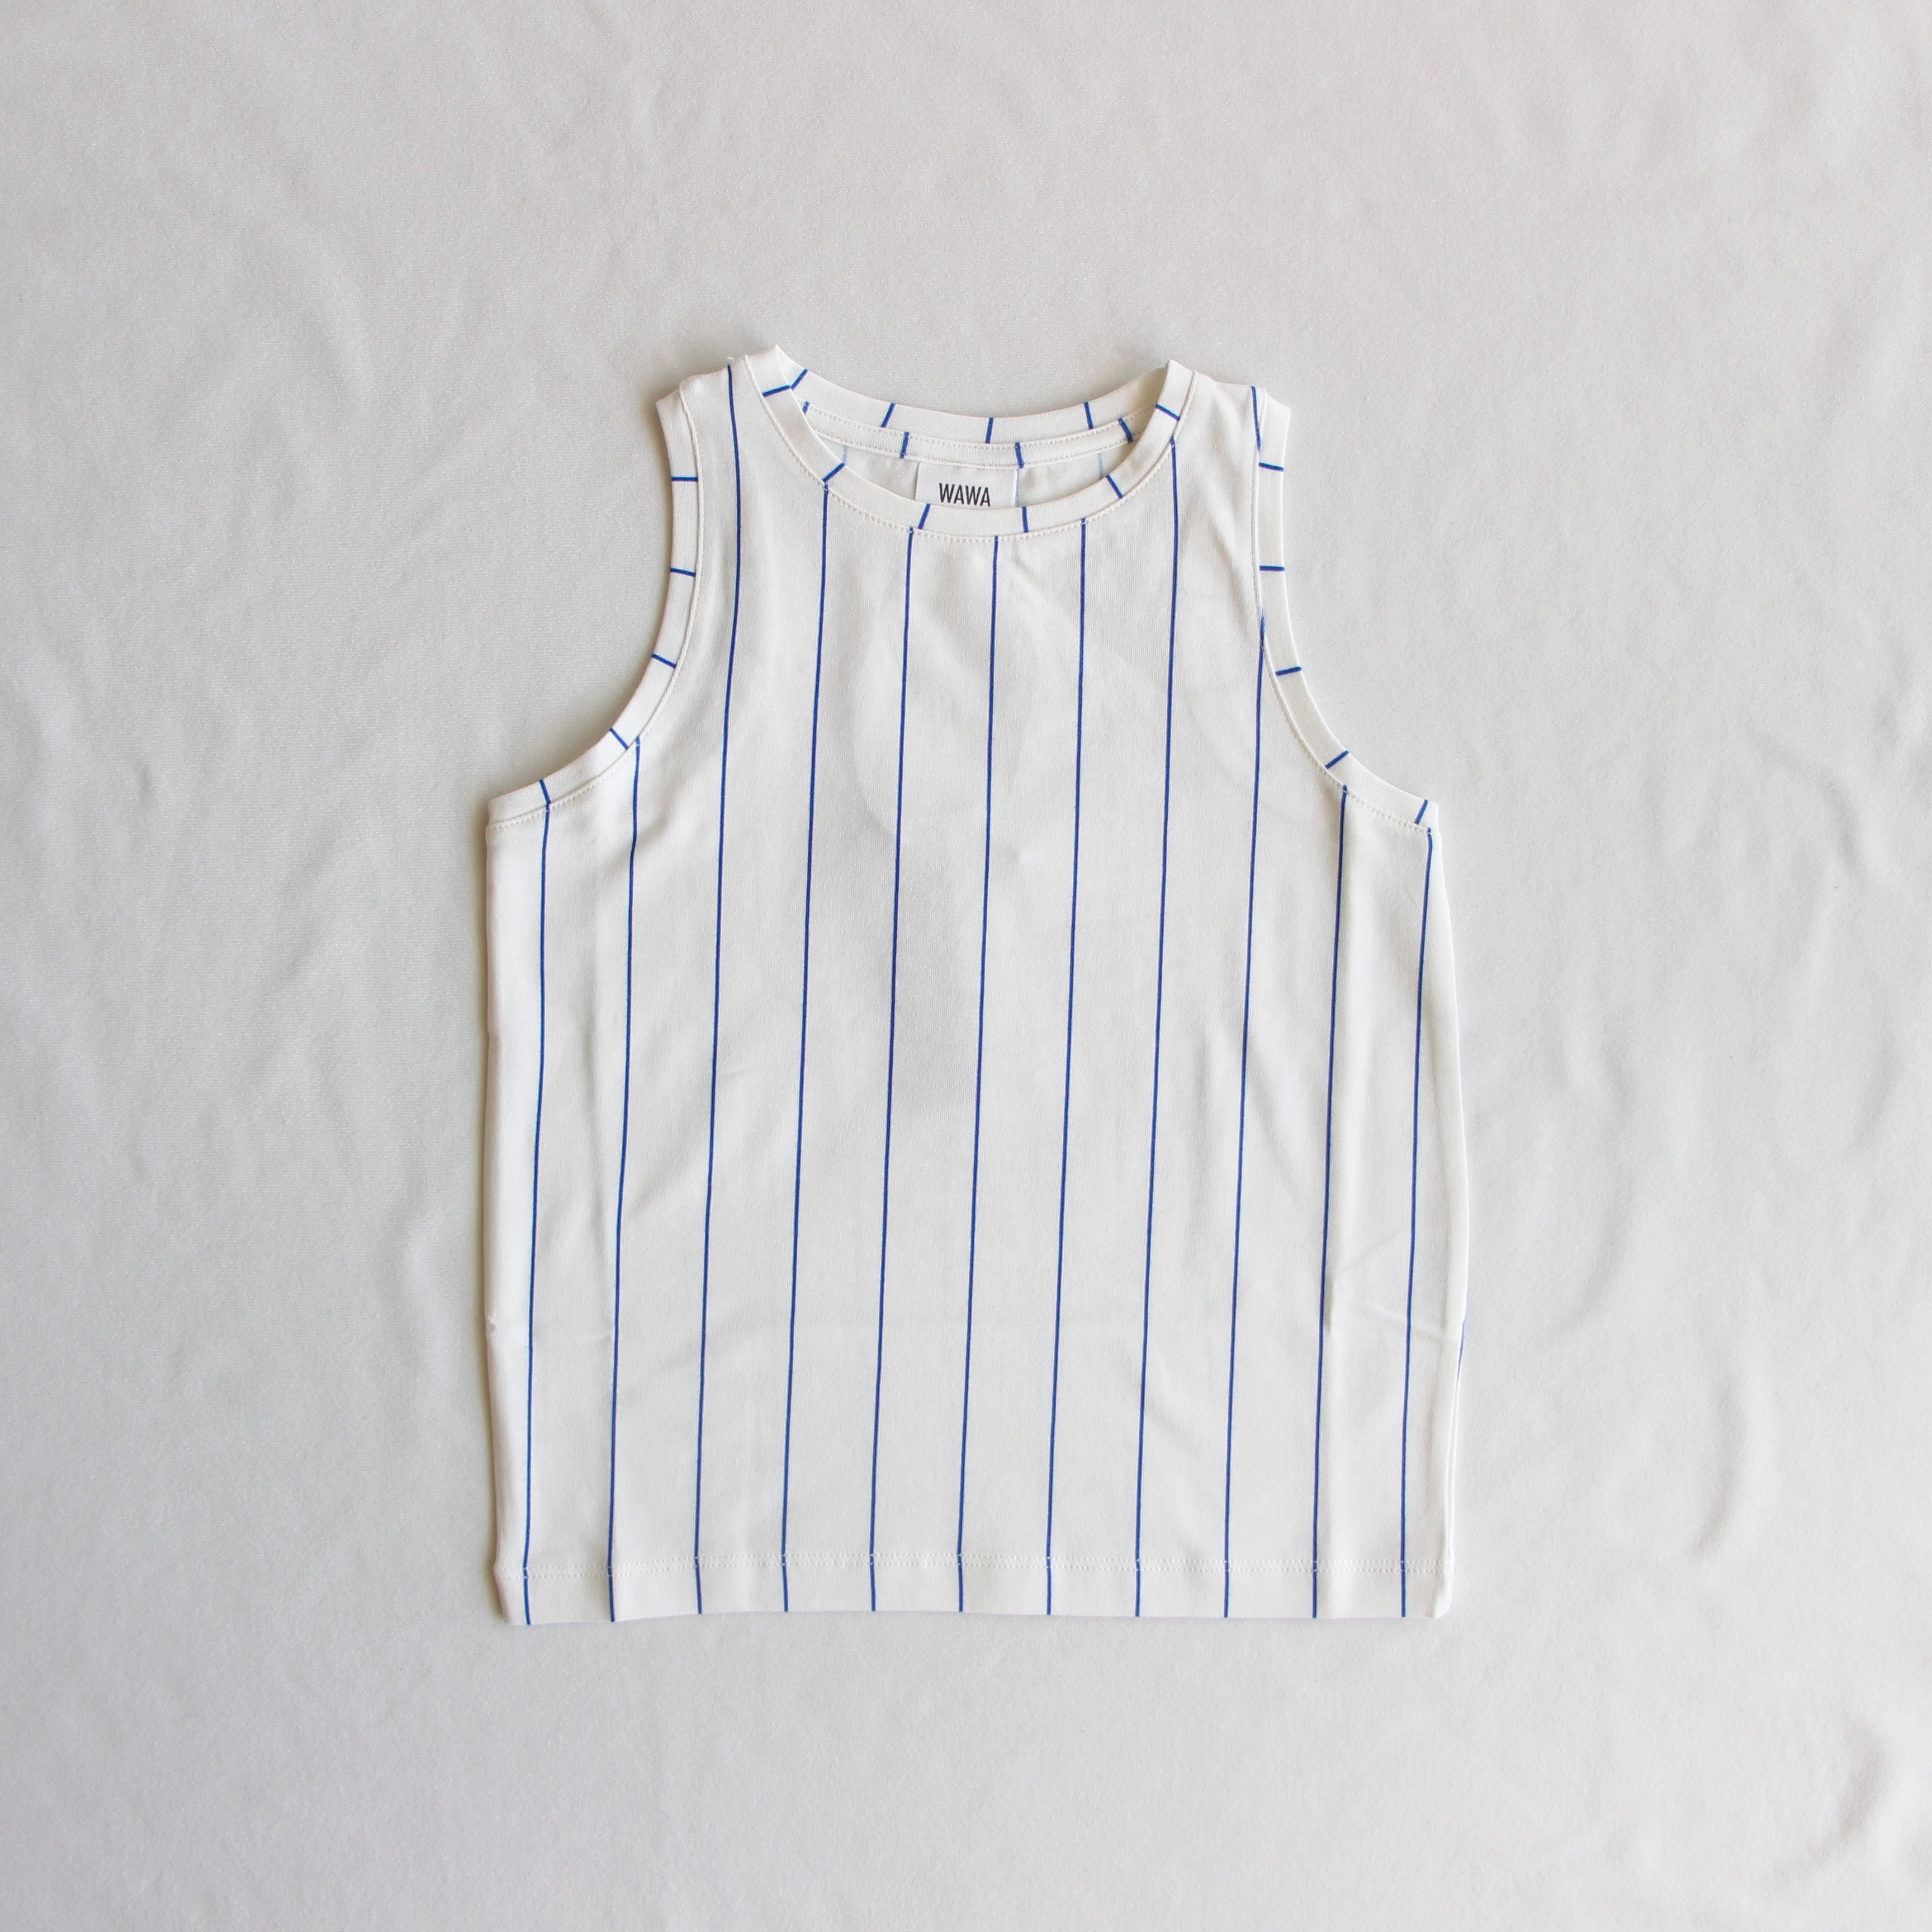 《WAWA 2018SS》Tank top airline / off-white